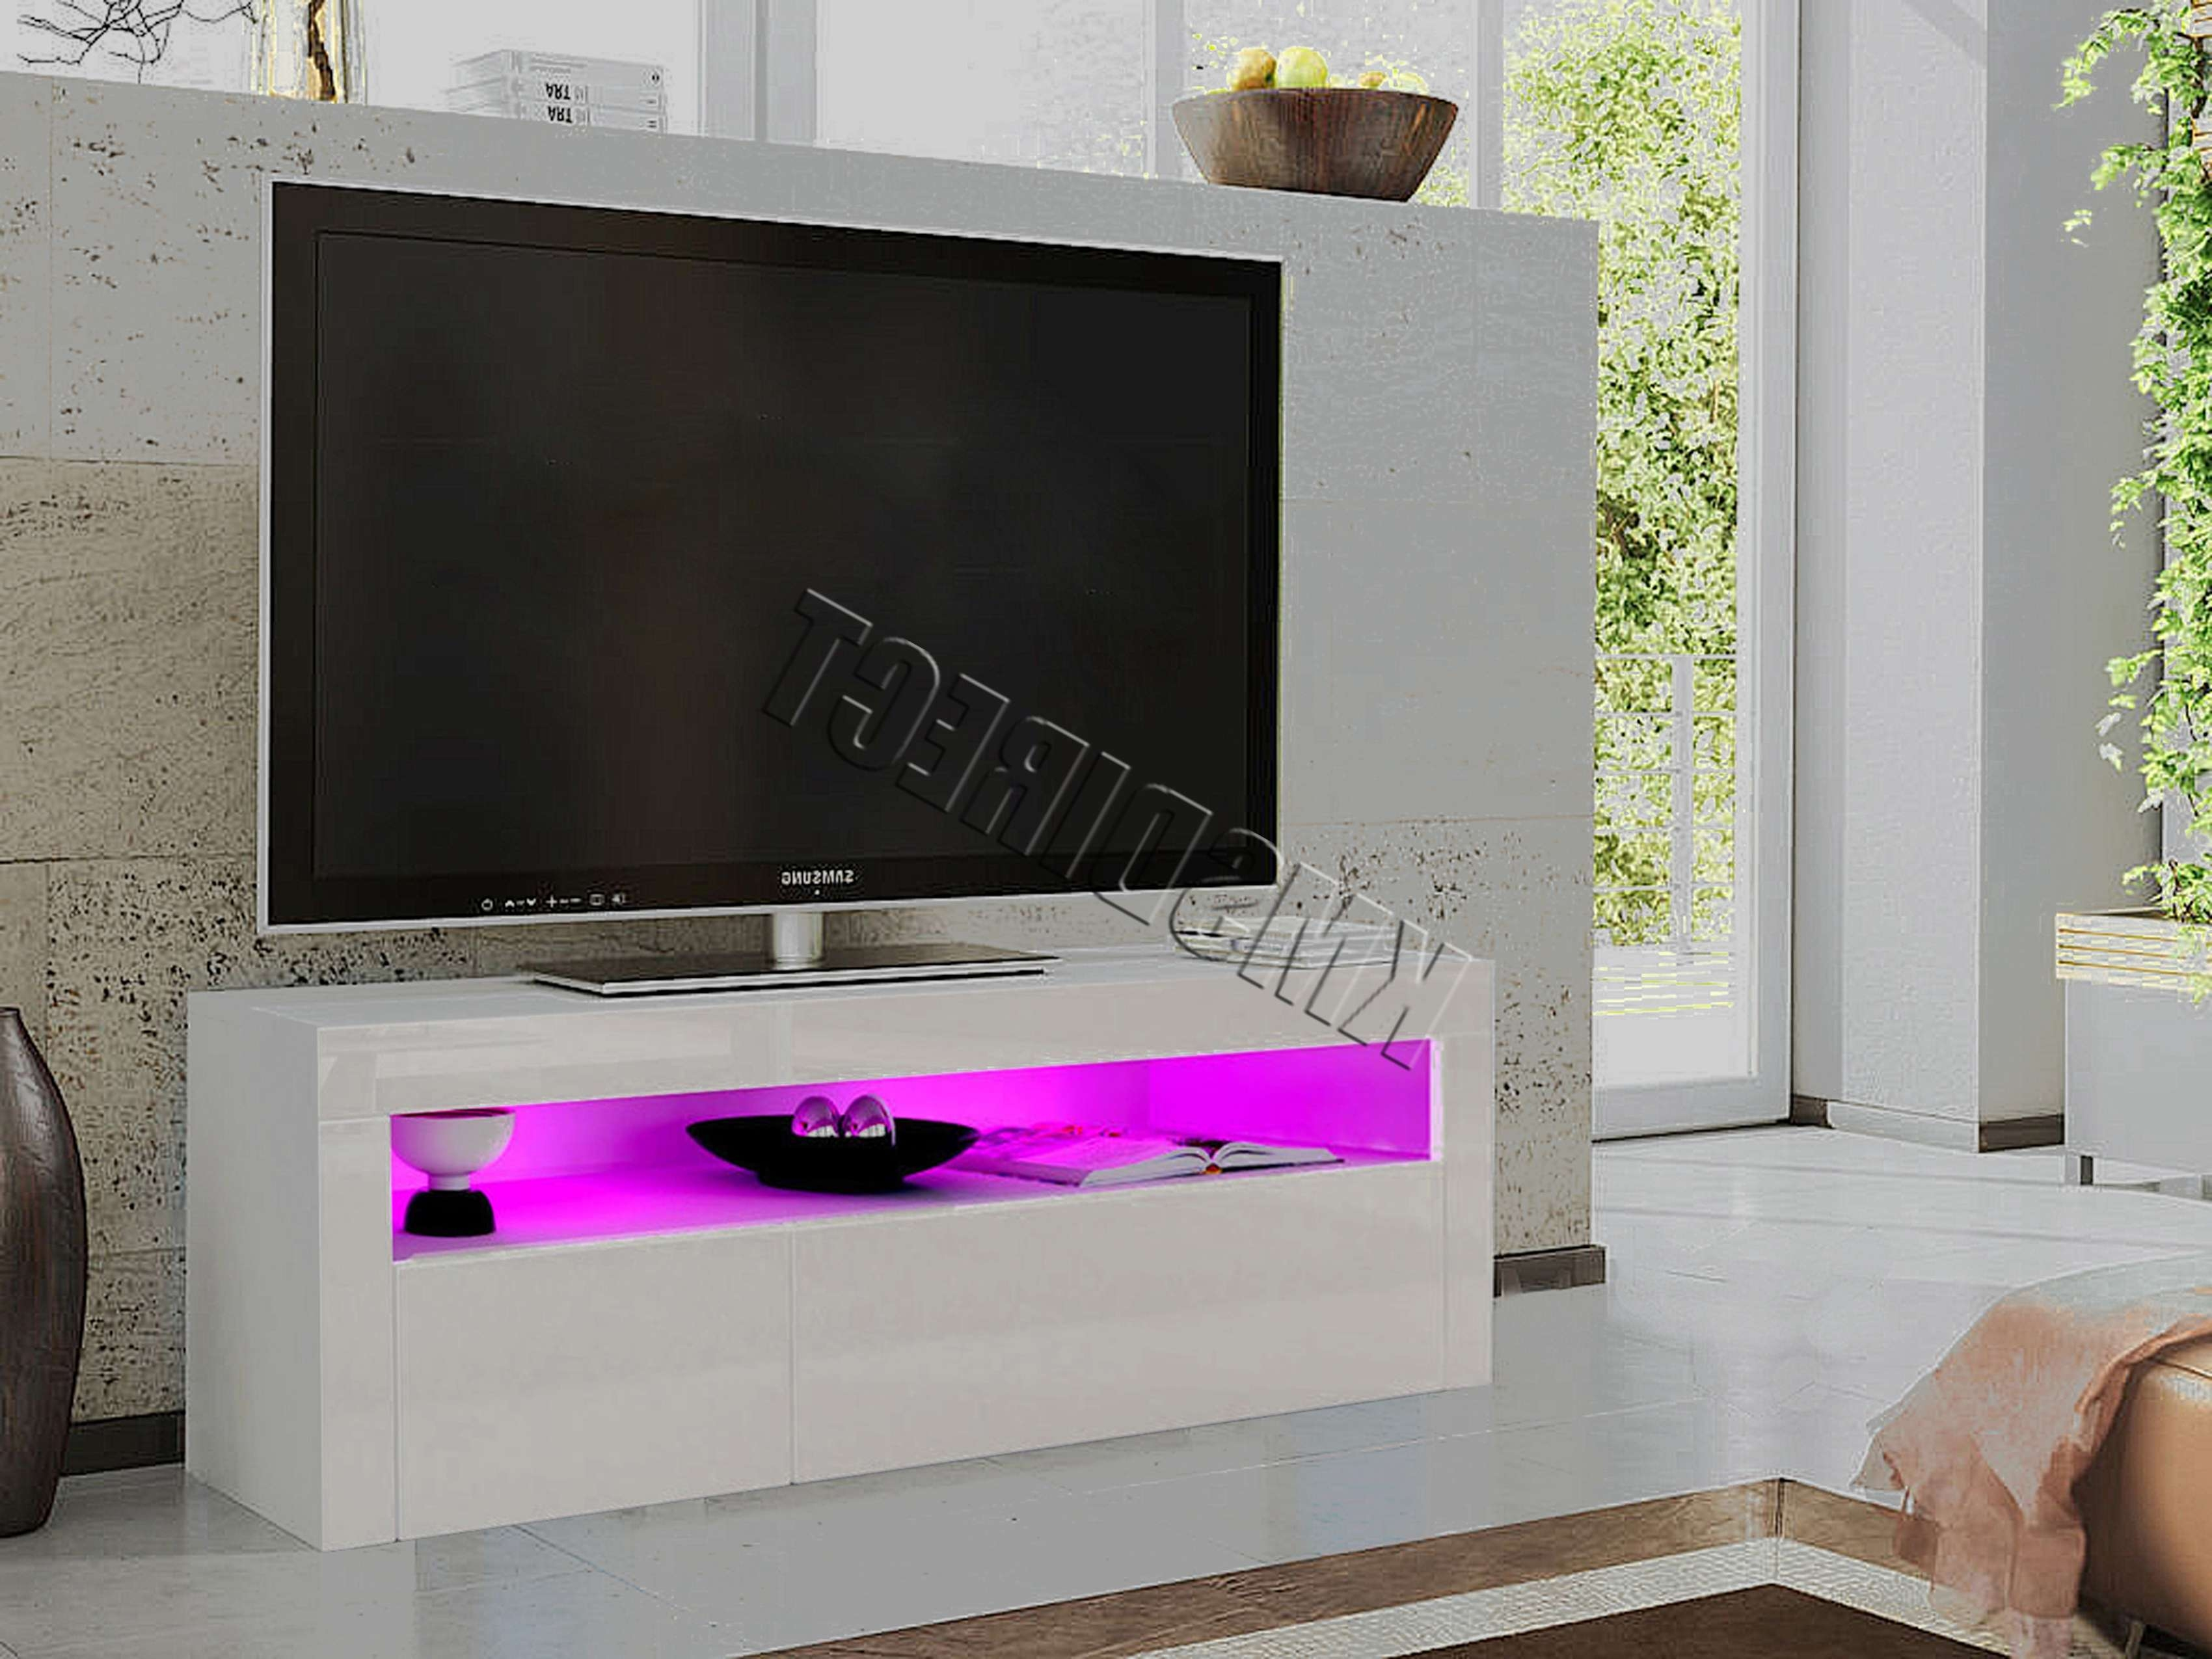 Foxhunter Modern High Gloss Matt Tv Cabinet Unit Stand White Rgb Pertaining To High Gloss Tv Cabinets (View 2 of 20)